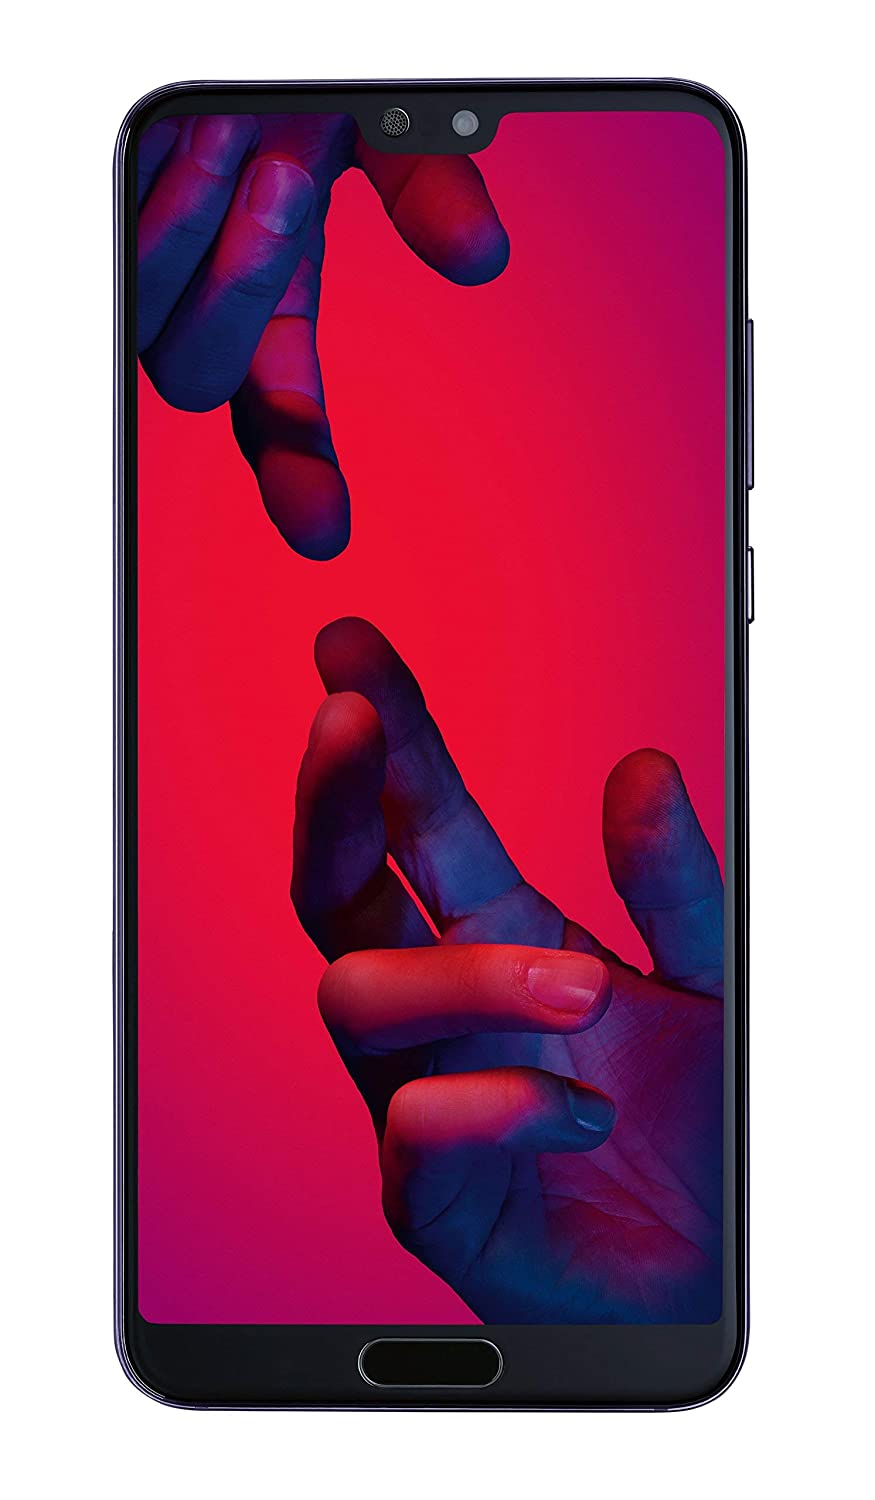 Huawei P20 Pro 128 GB/6 GB Single SIM Smartphone - Twilight (West European Version)